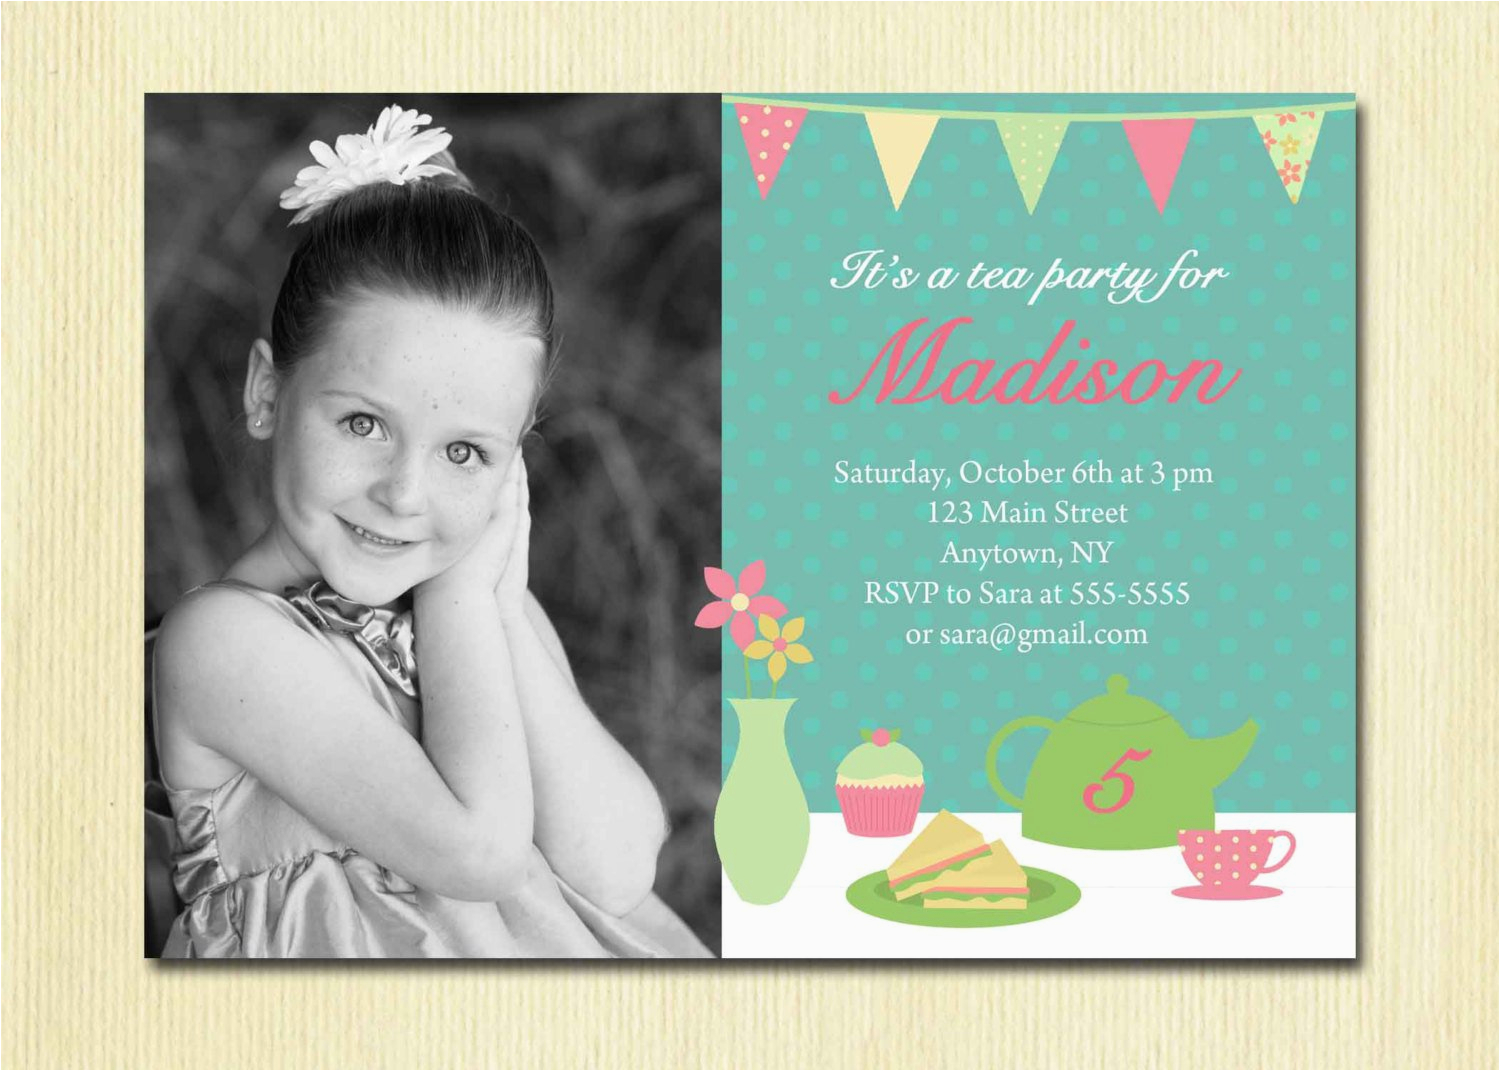 Birthday Invitation Wording For 5 Year Old Best Party Ideas